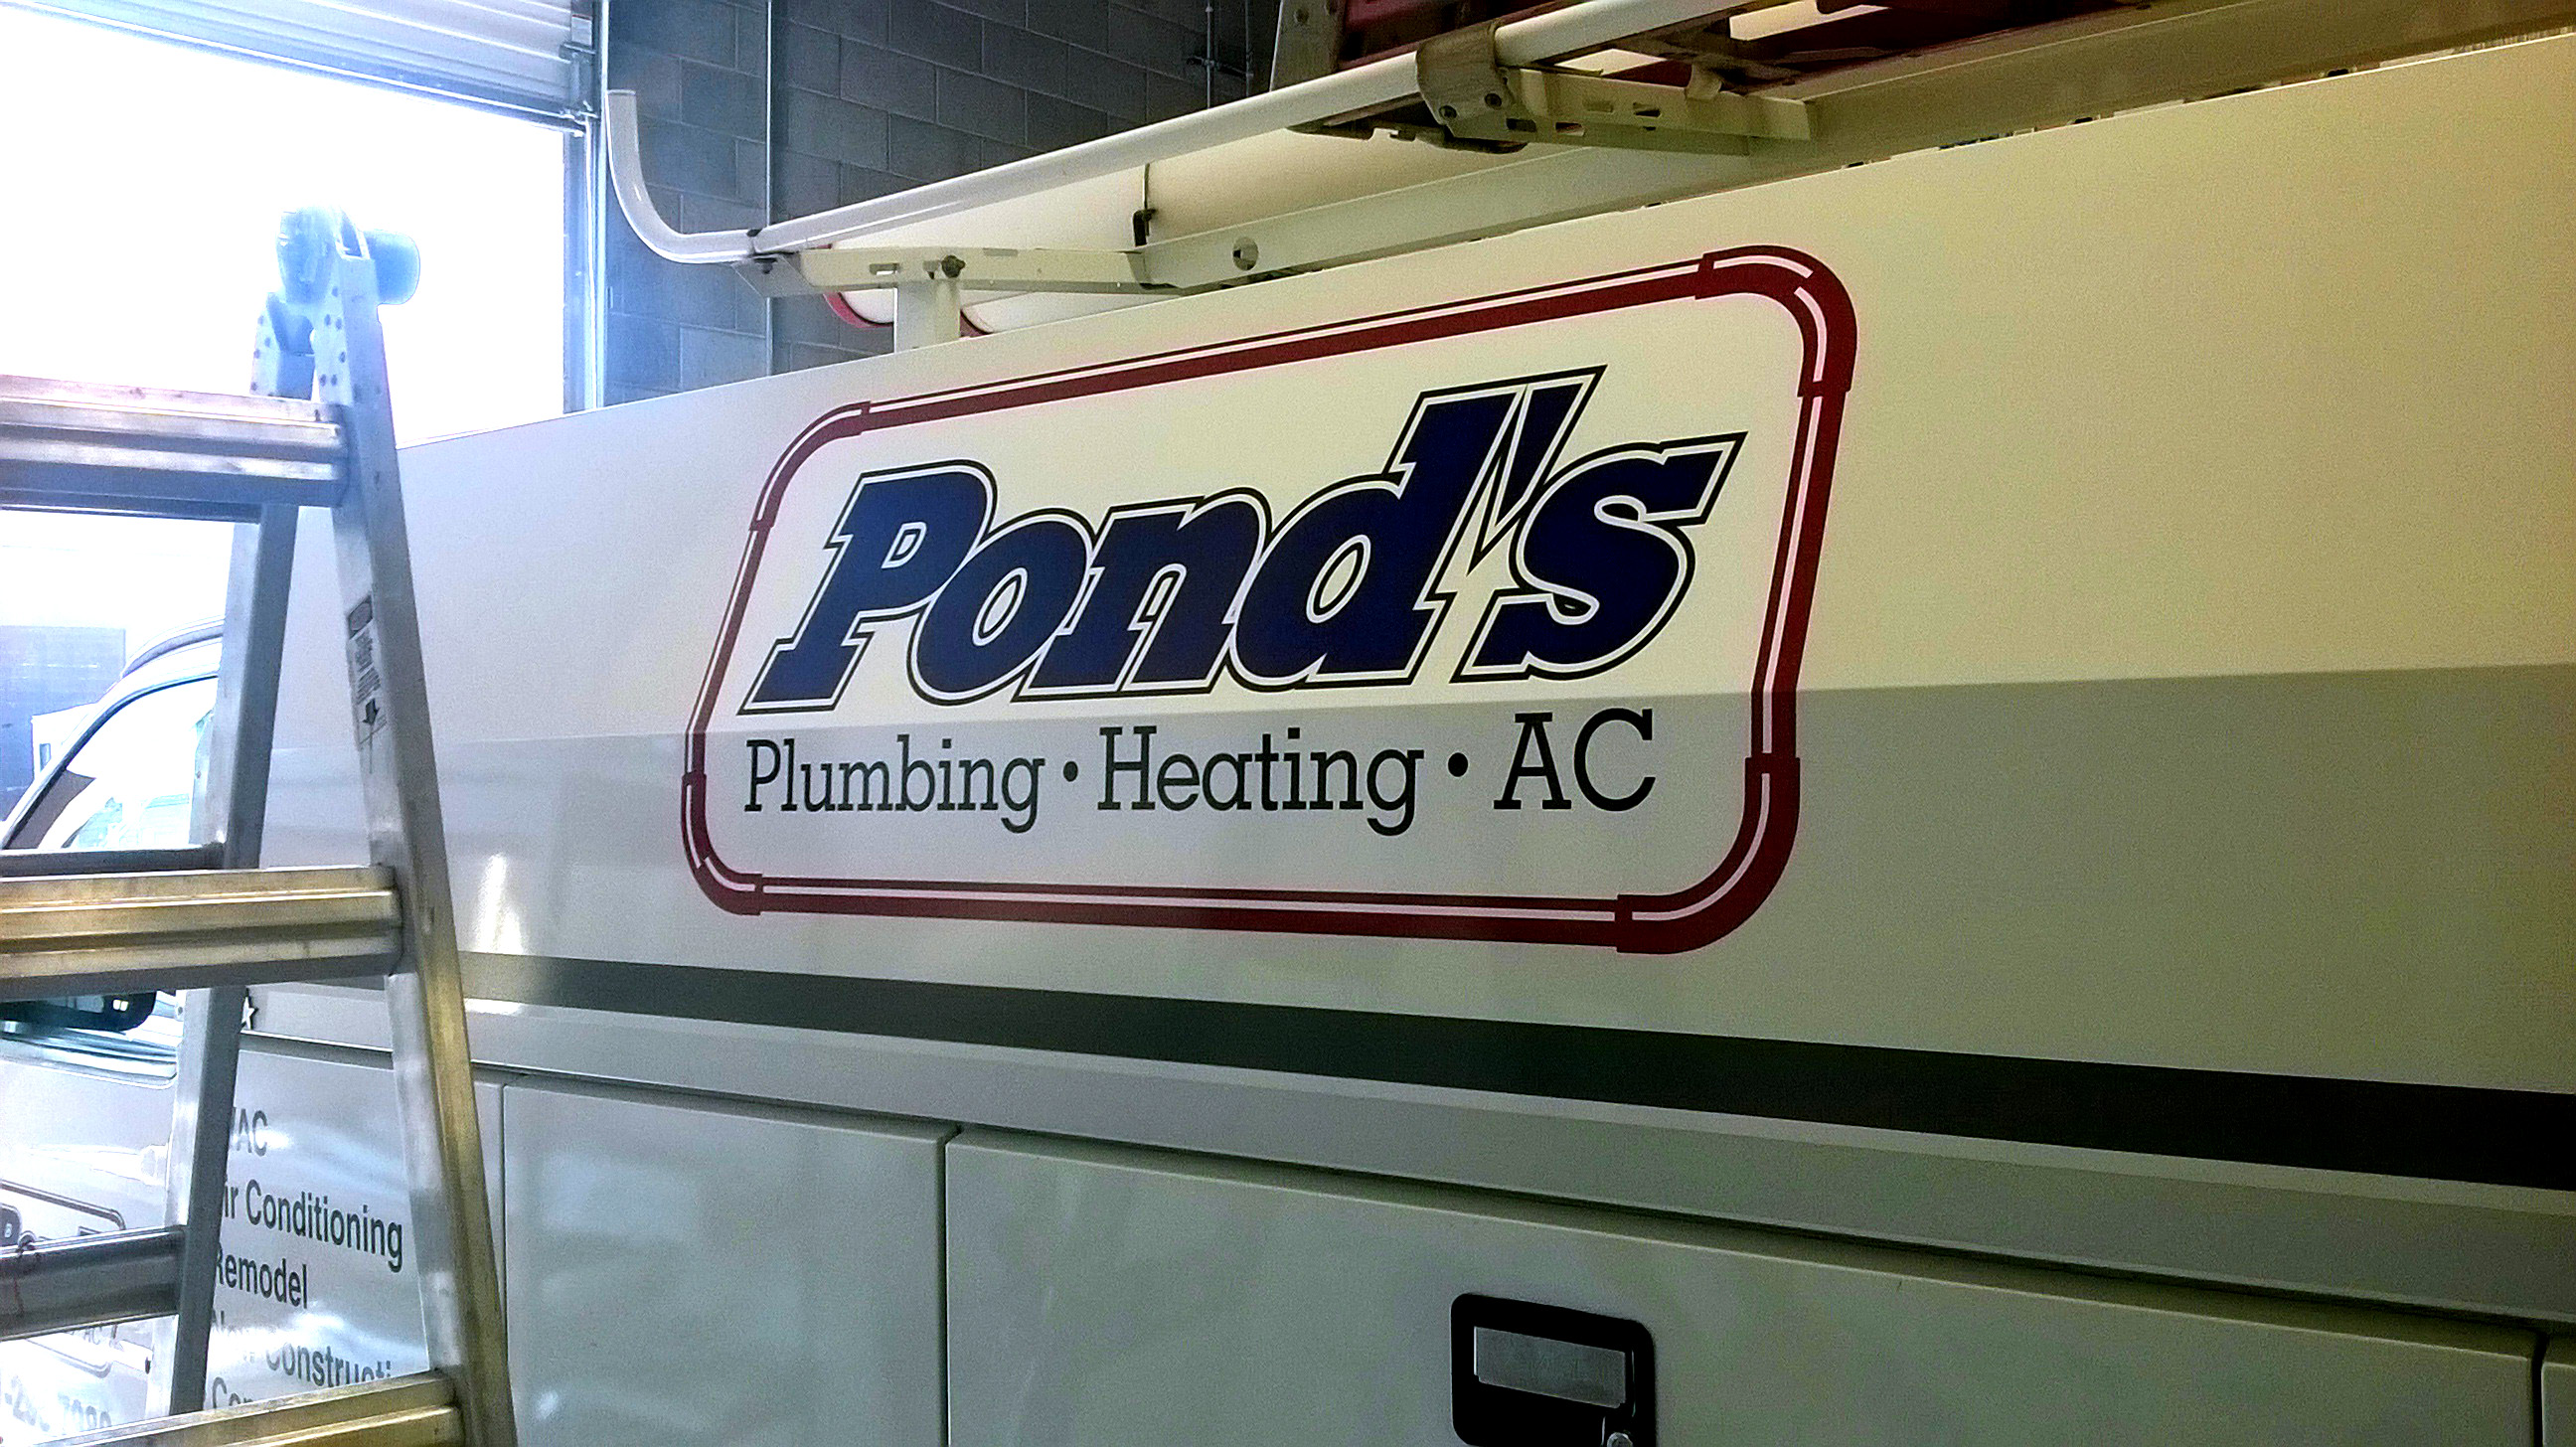 Pond's Plumbing and Heating